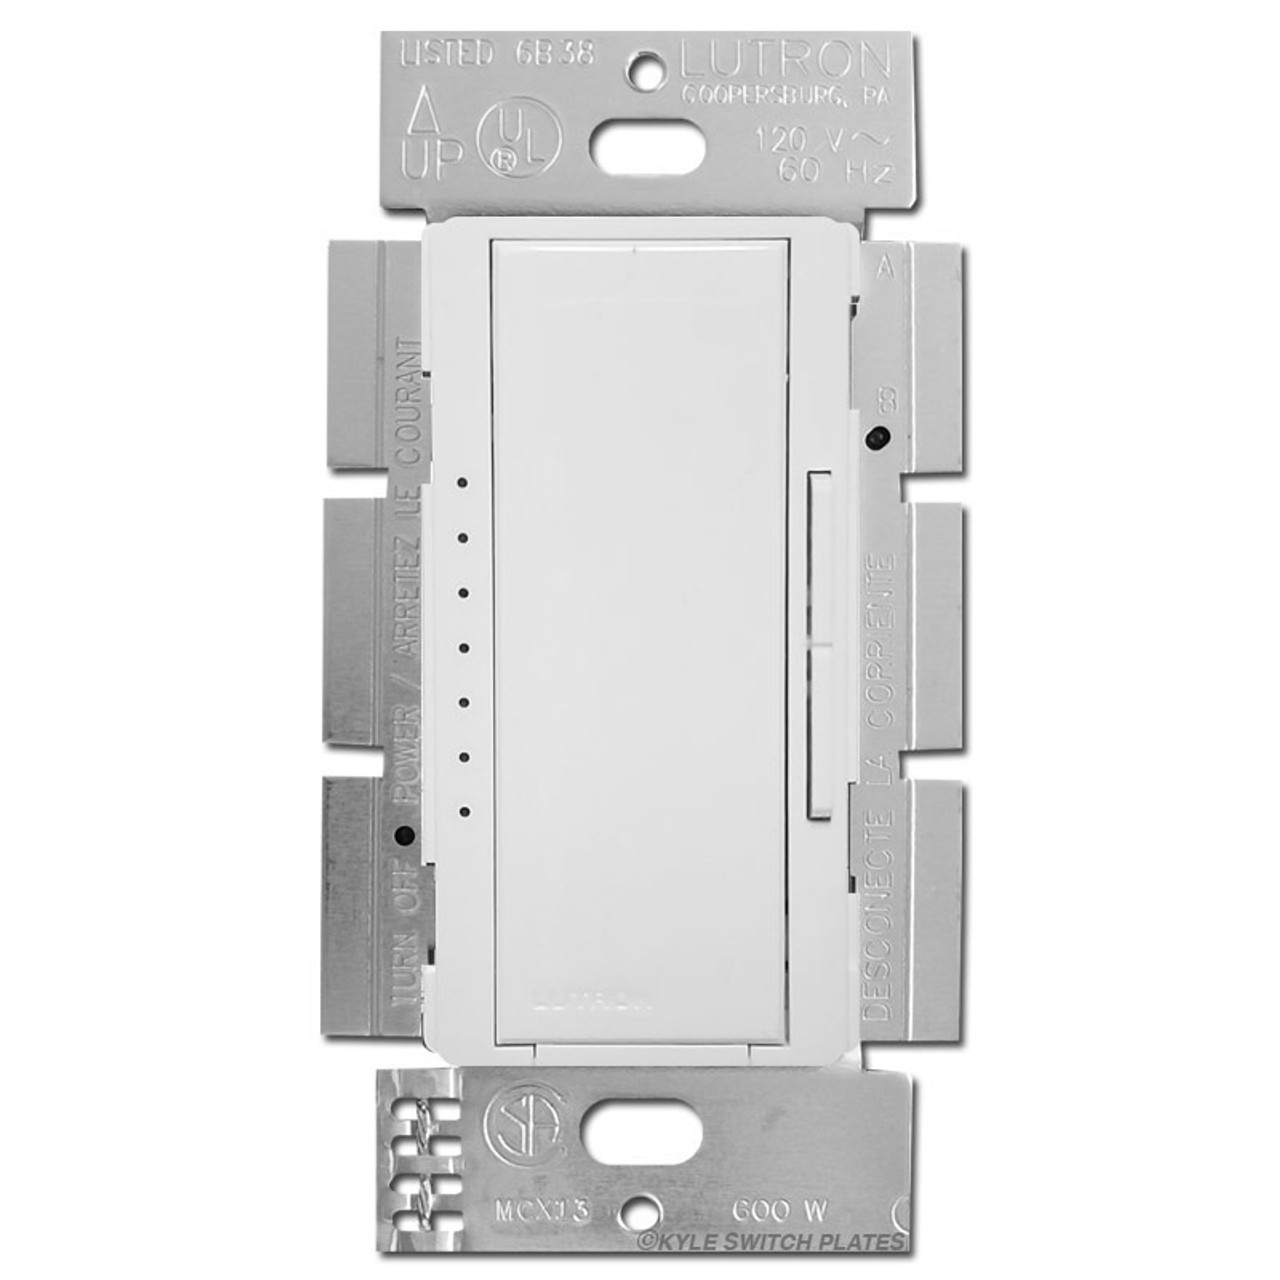 white lutron smart dimmer switch indicator lights